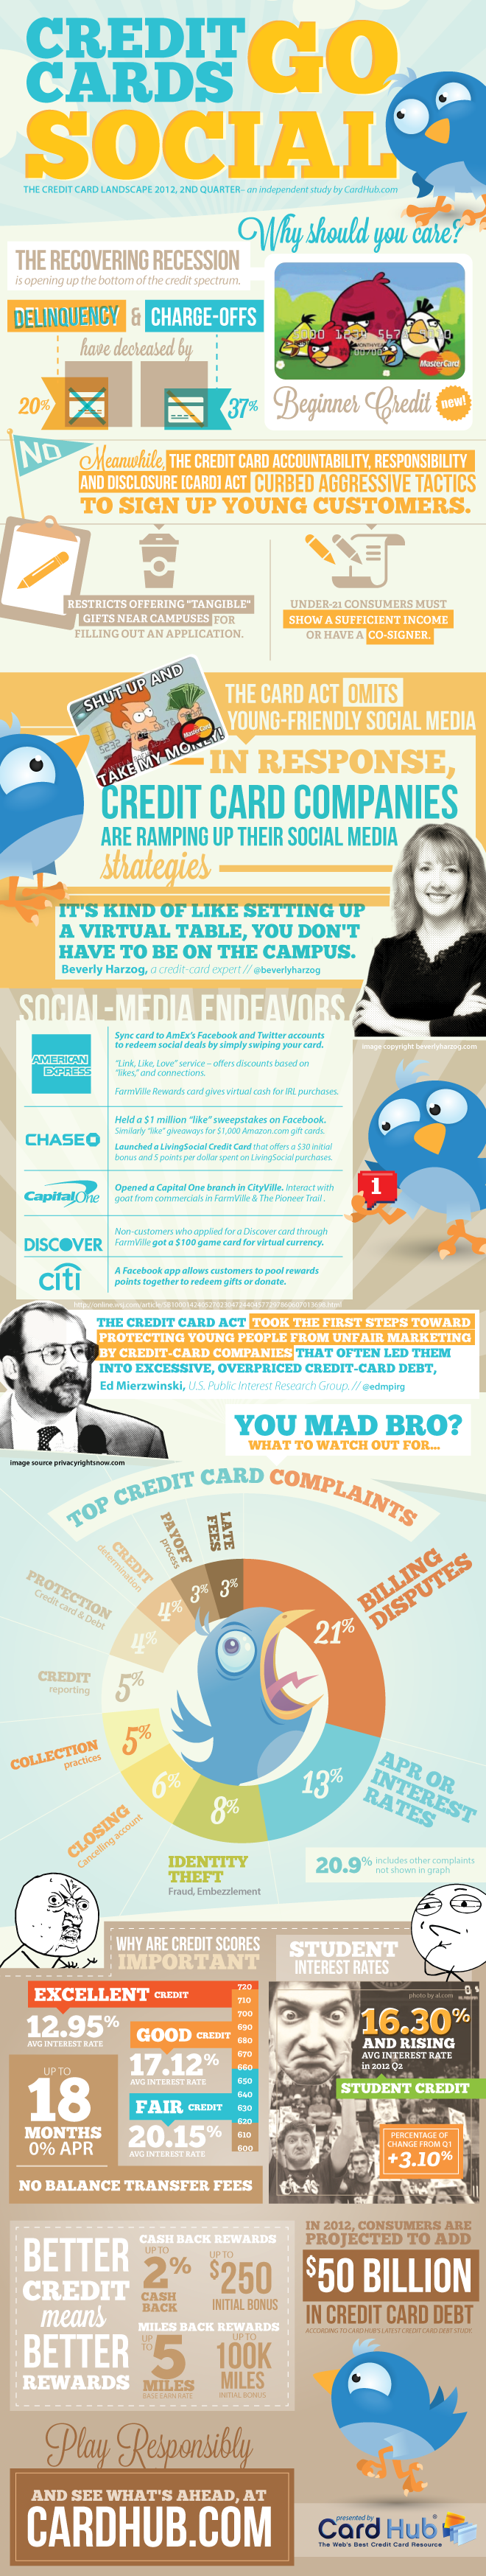 Credit Cards Are Going Social [Infographic]